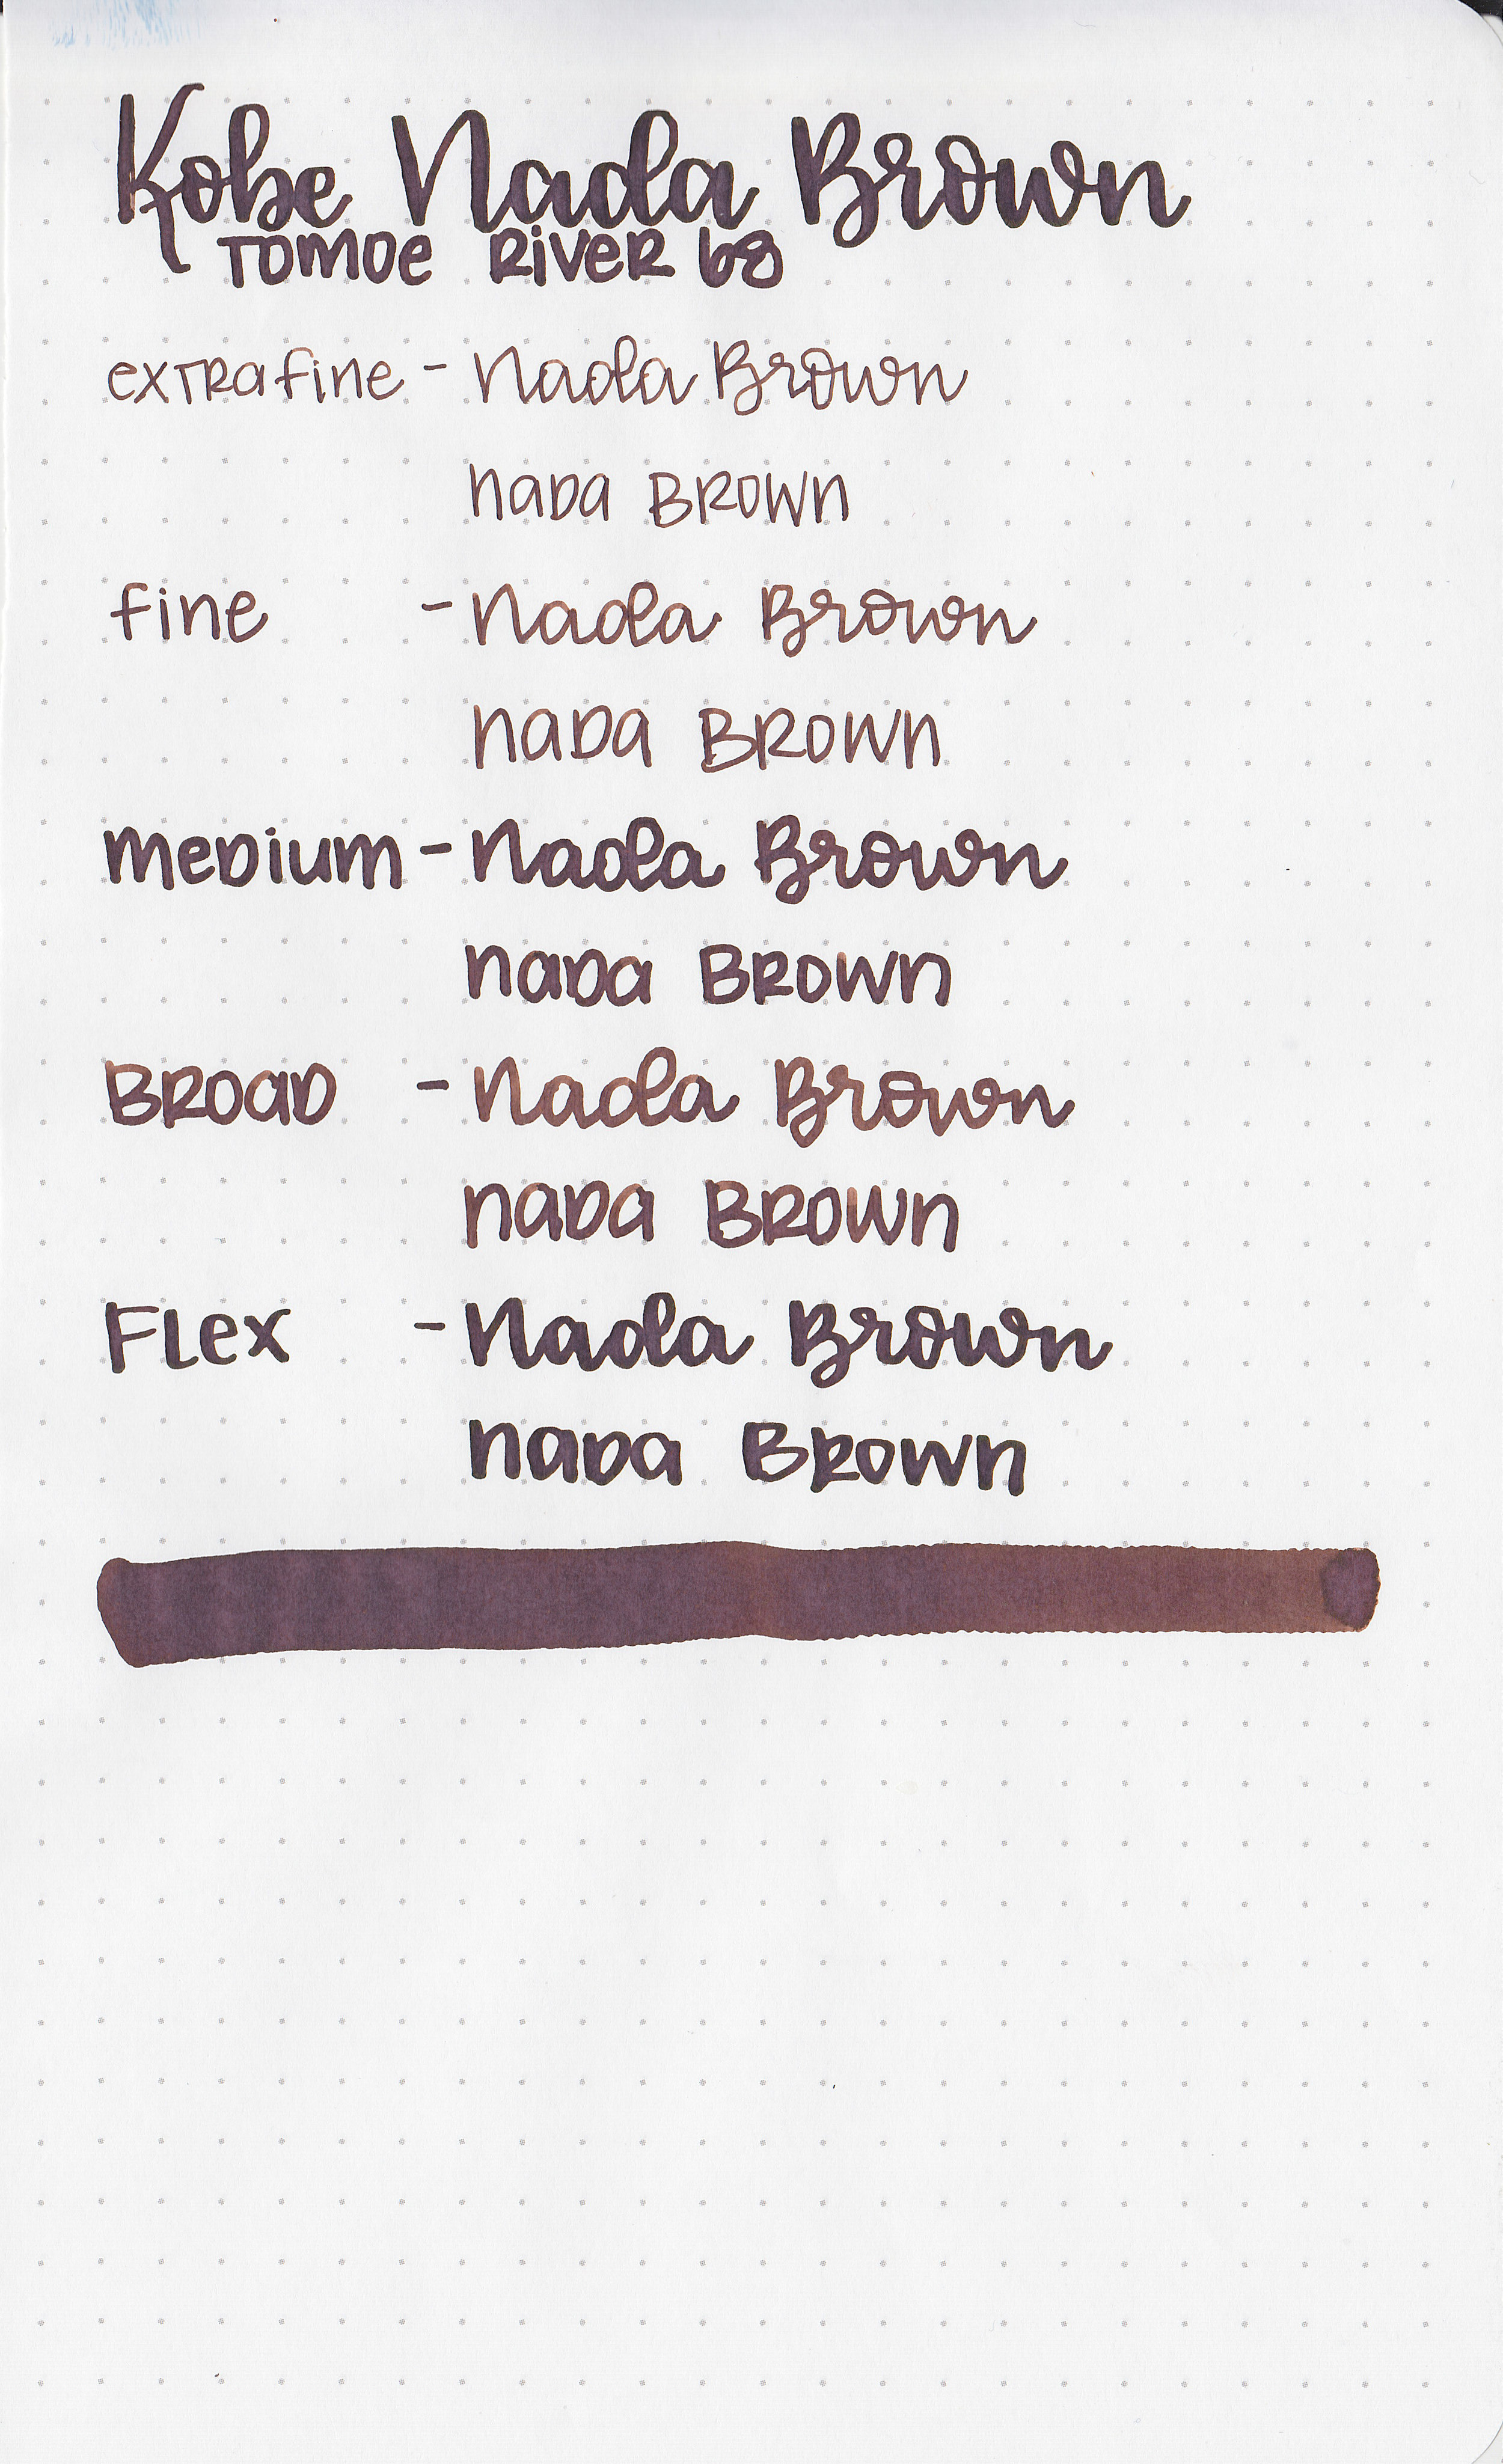 nk-nada-brown-7.jpg